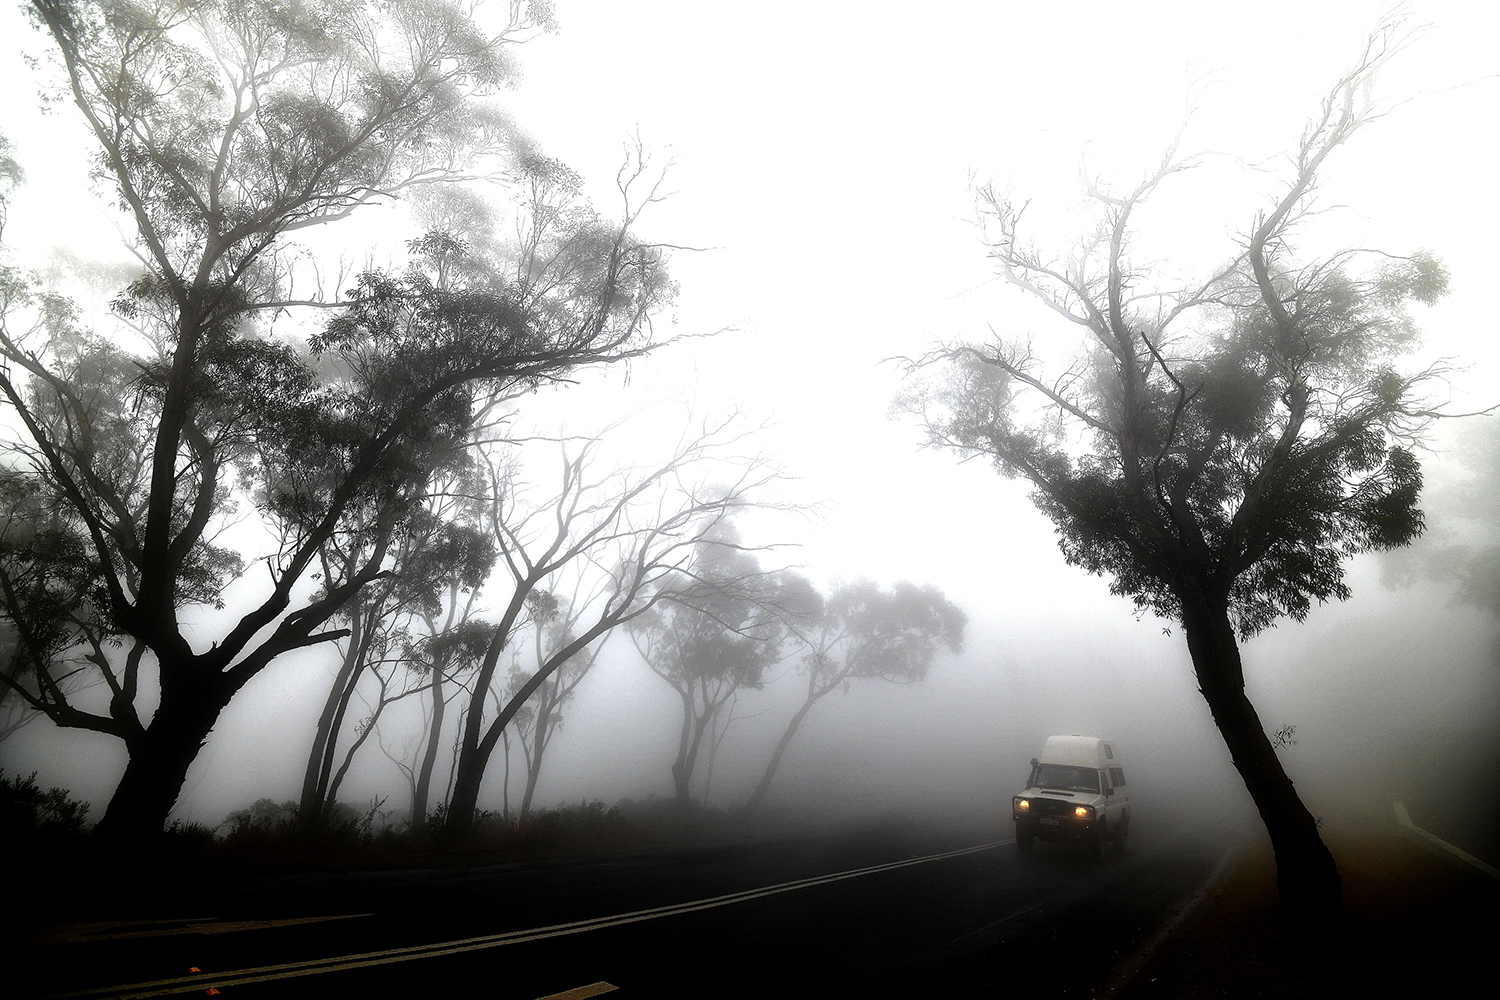 A car makes its way through thick fog mixed with bushfire smoke in the Ruined Castle area of the Blue Mountains on Jan. 11 SAEED KHAN/AFP via Getty Images